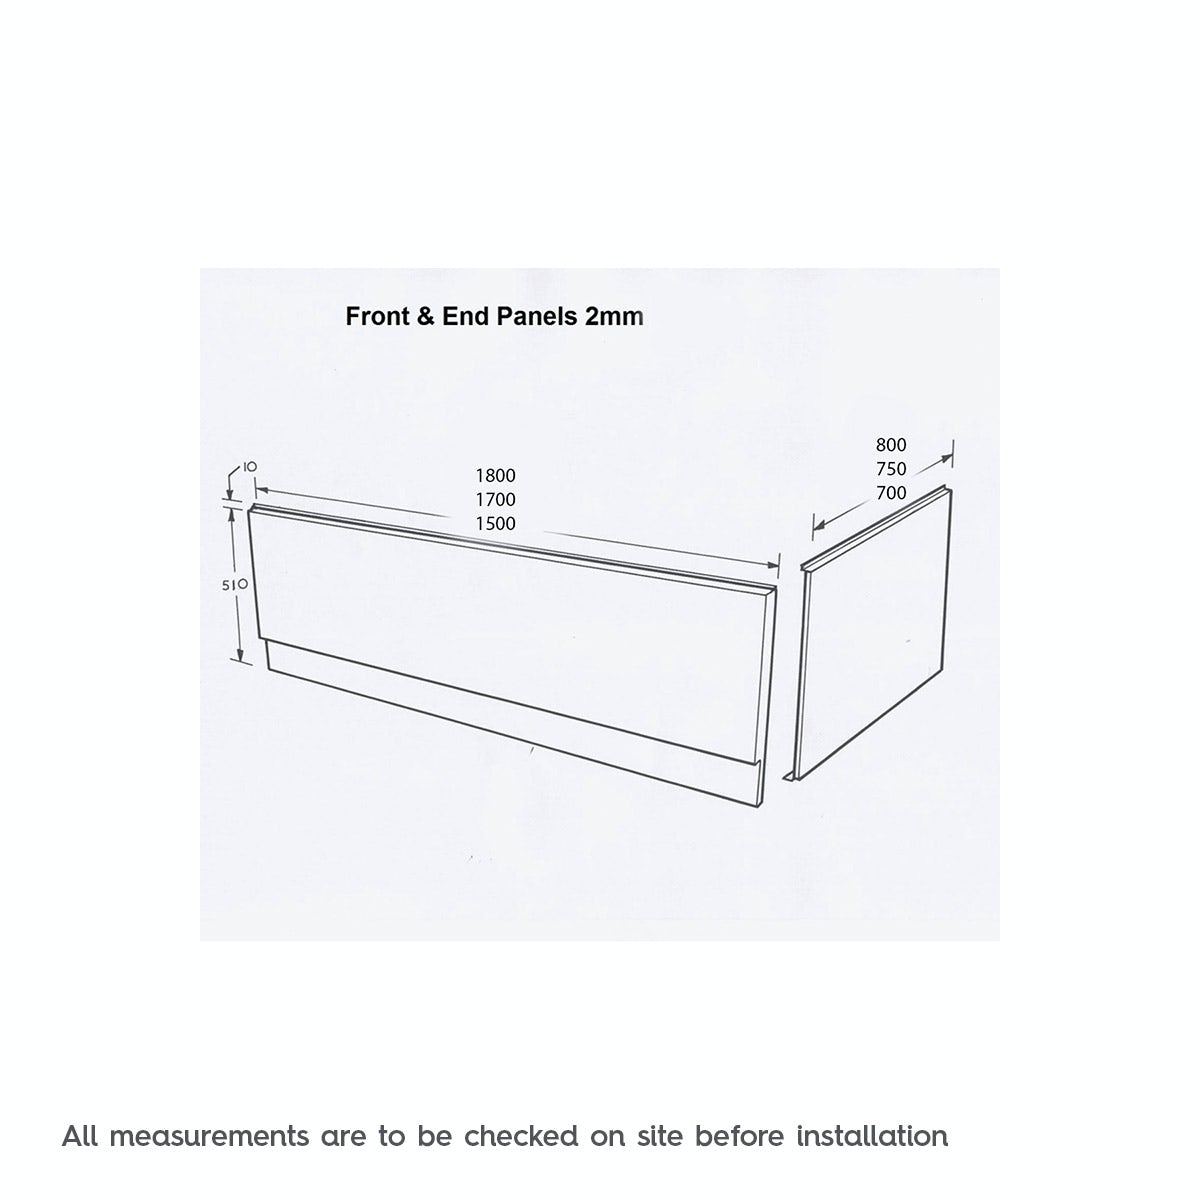 Dimensions for Acrylic bath end panel 800mm